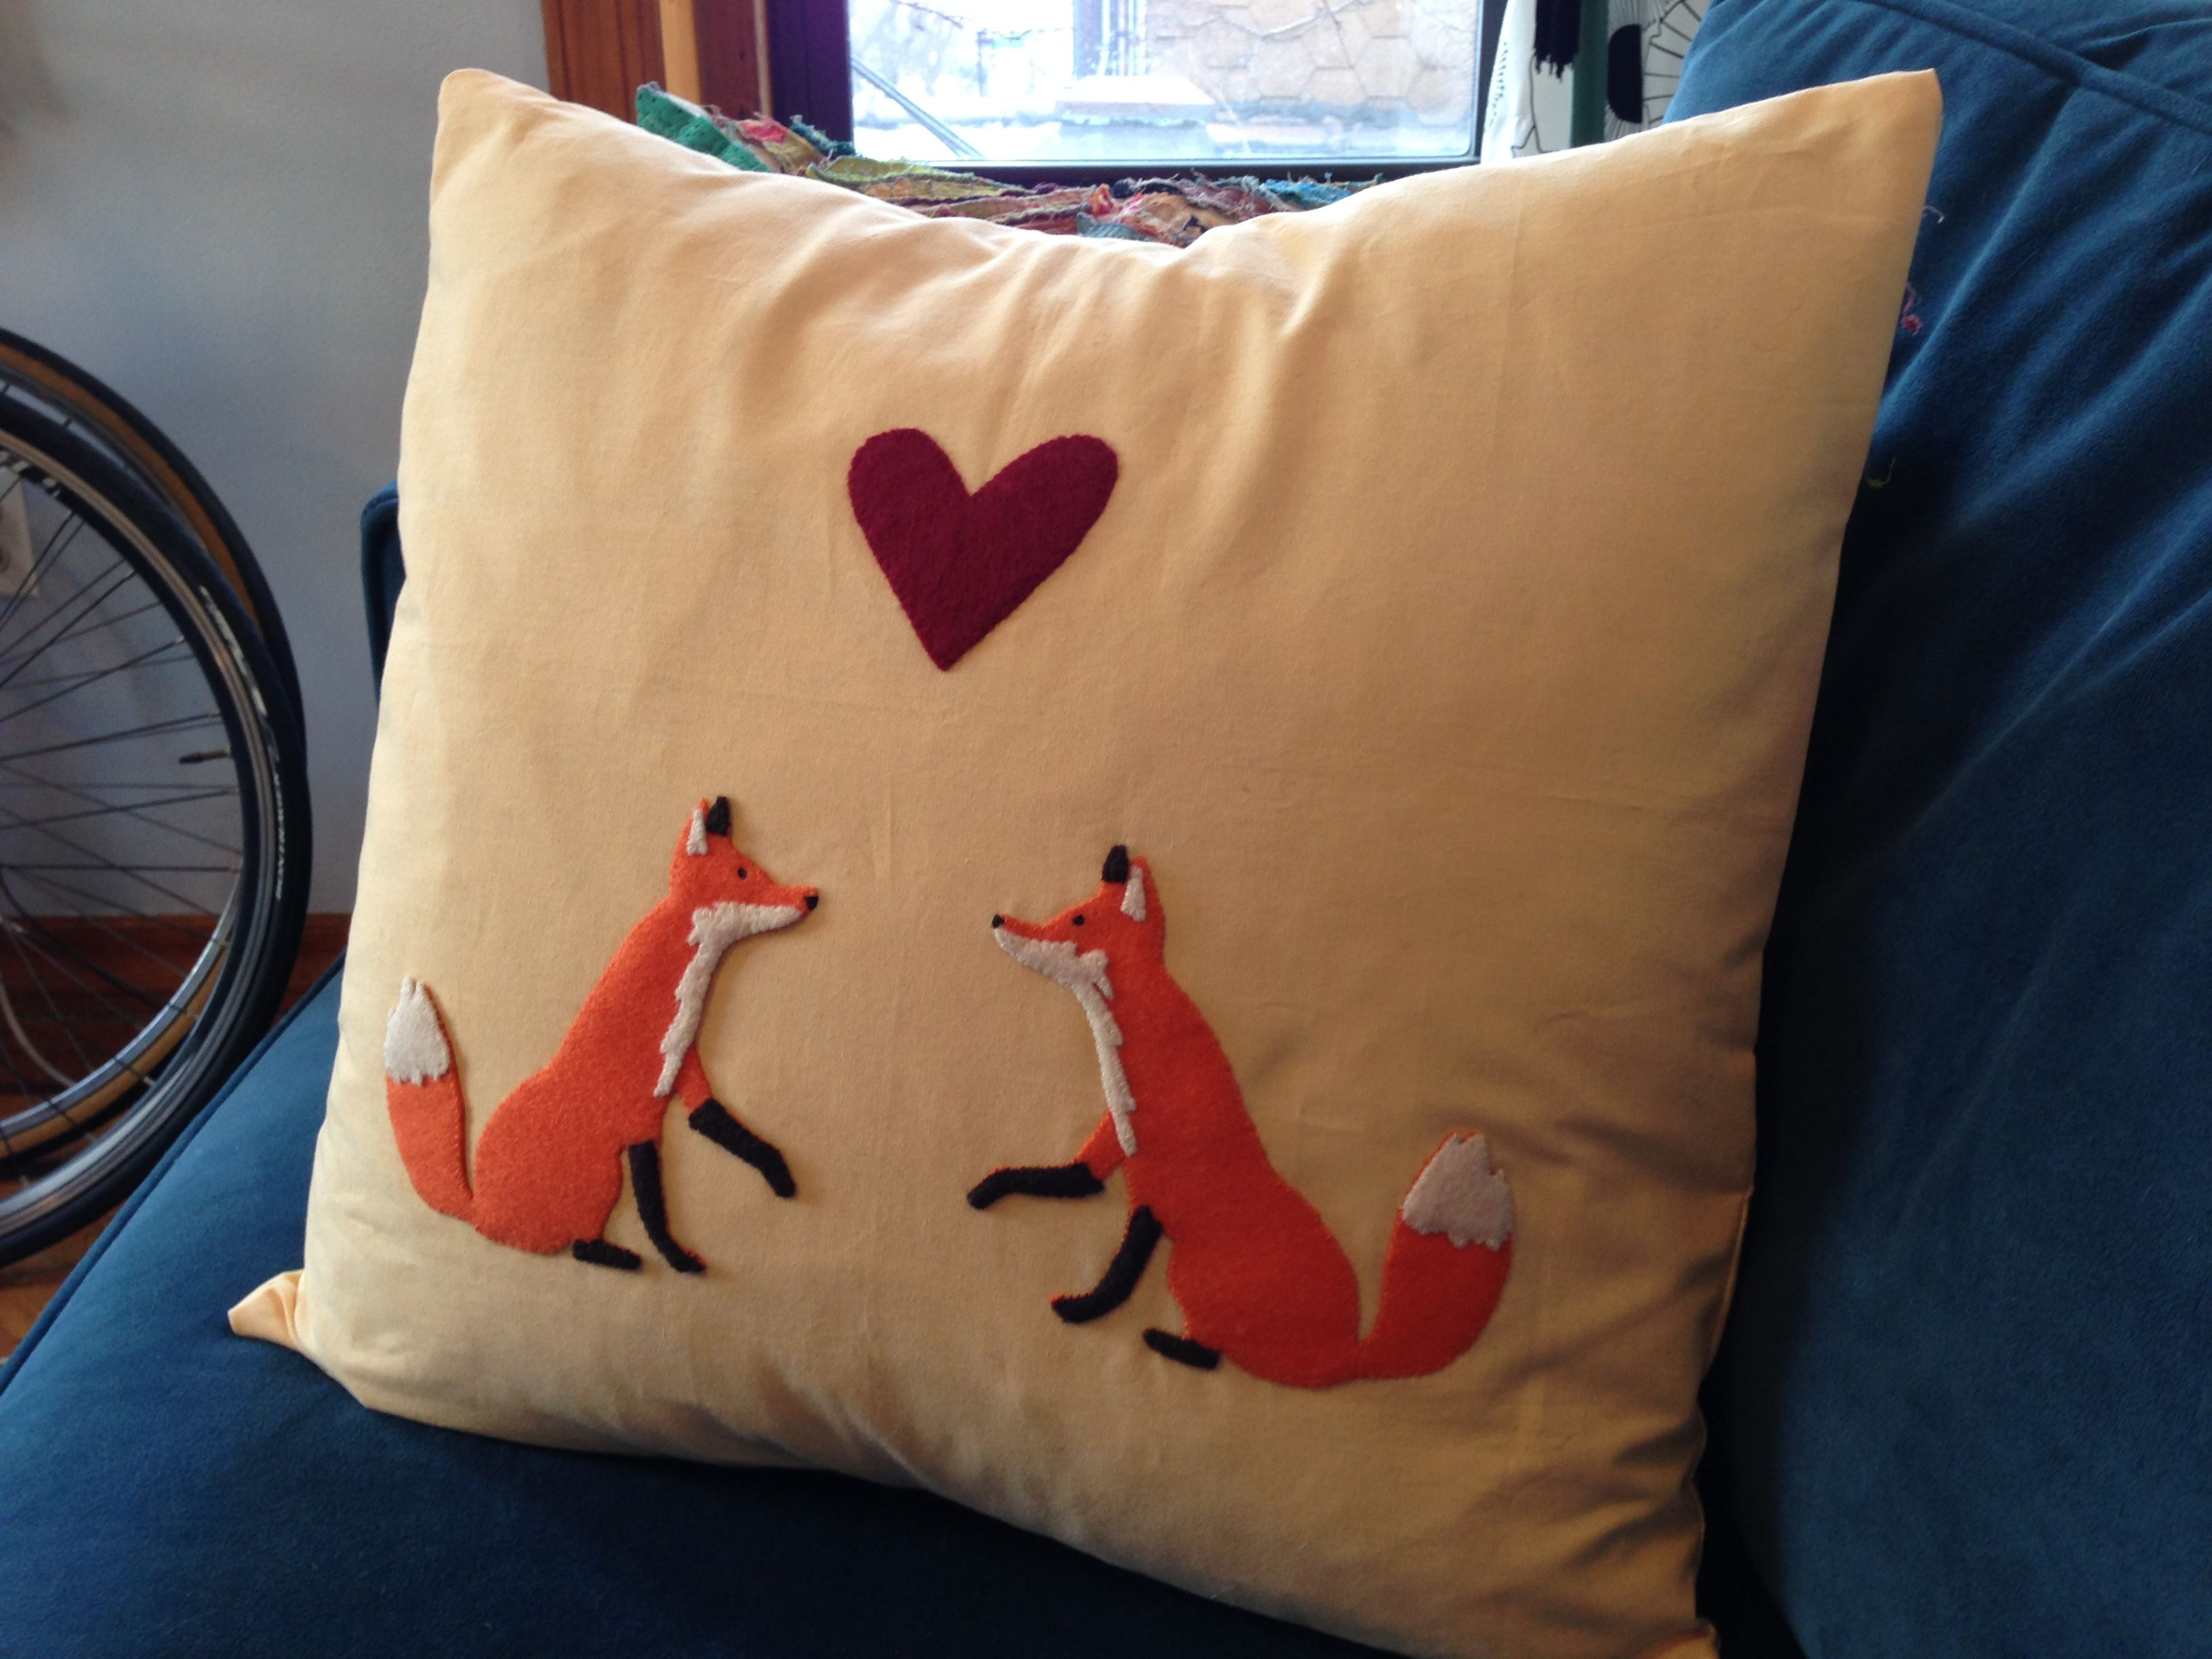 Fox love pillow! I hand stitched felt pieces to make the fox pattern then used the sewing machine to assemble the pillow. More pics: http://shananasplit.tumblr.com/post/39324564936/sewing-machine-project-2-fox-love-pillowcase